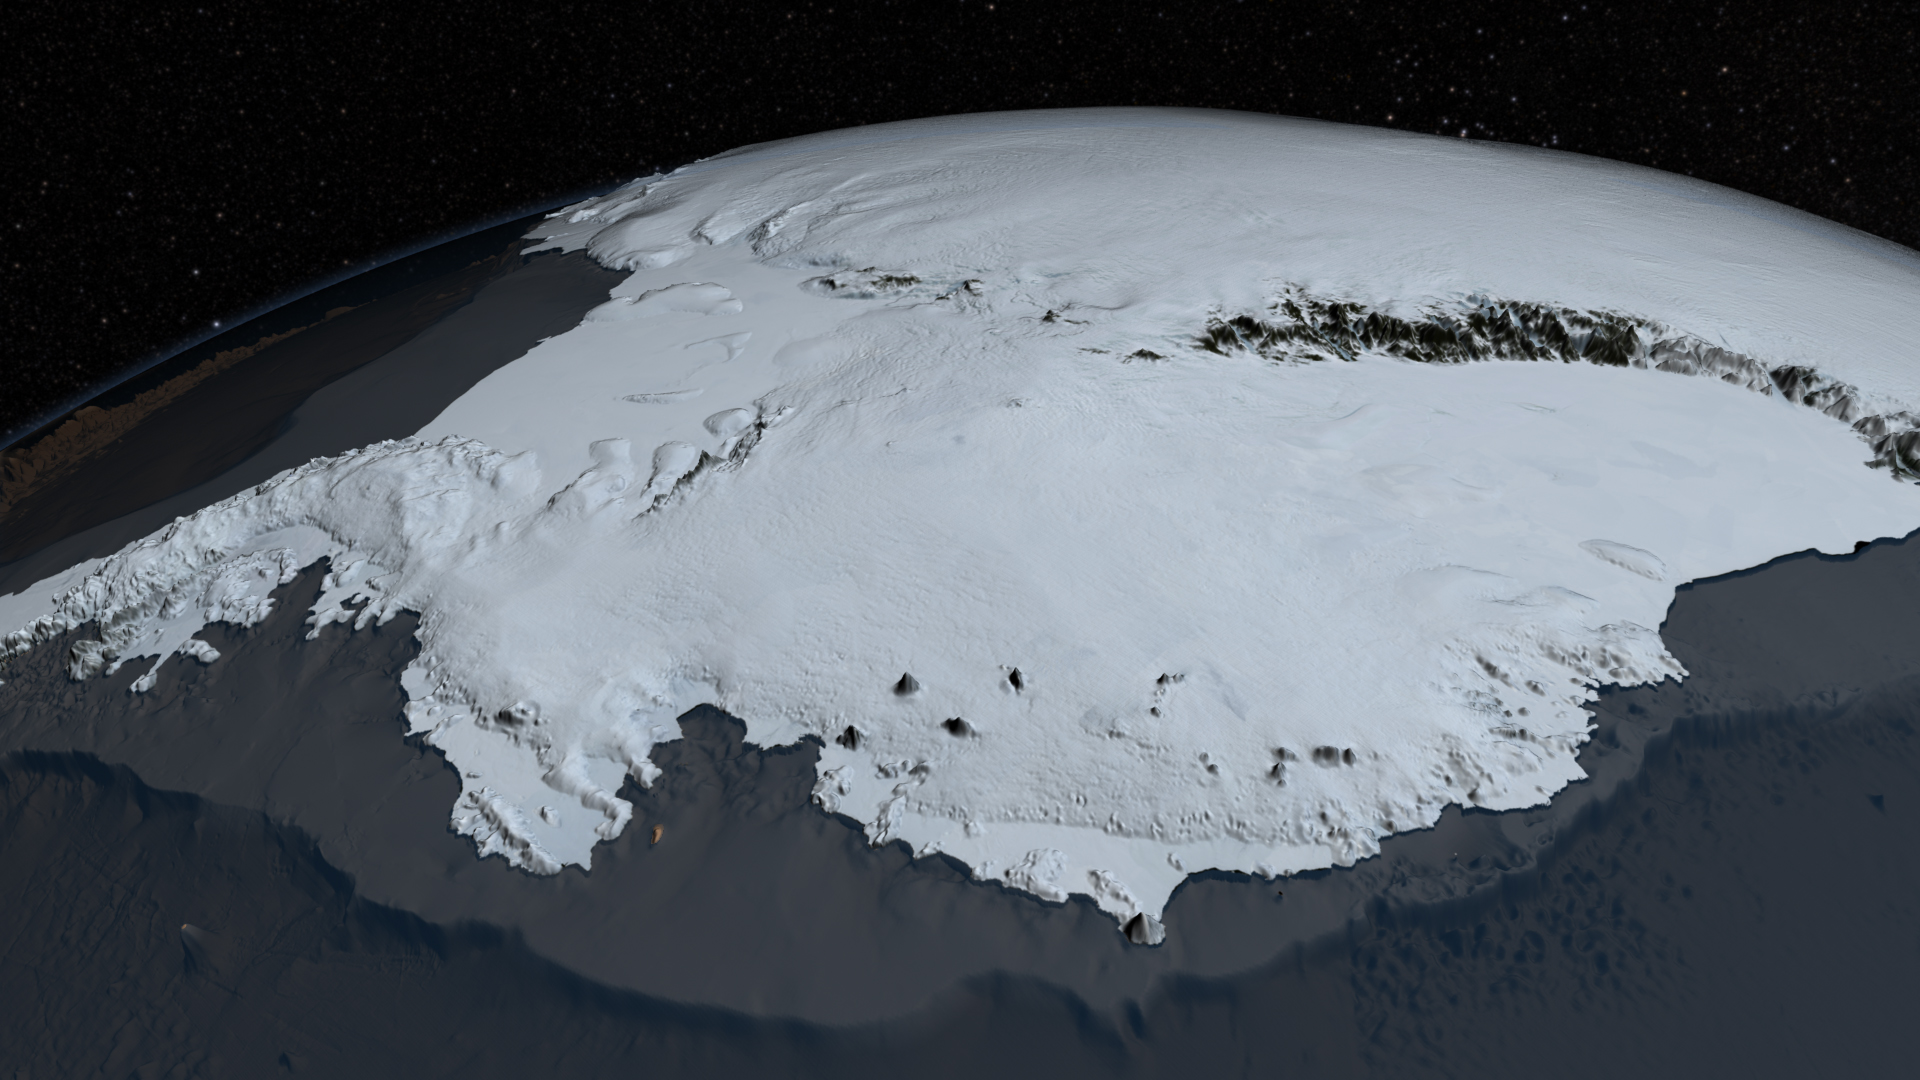 NASA's IceBridge Mission Contributes to New Map of ... on map of western hemisphere, map of ross ice shelf, atlantic ocean, arctic ocean, pacific ocean, map of iceland, north pole, map of italy, map of oceania, map of australia, map of arctic, map of africa, map of pangea, map of south orkney islands, map of antarctic peninsula, map of europe, map of south shetland islands, map of mongolia, south america, map of world, southern ocean, map of the continents, map of earth, map of argentina, map of north pole, north america, map of weddell sea, indian ocean, south pole,